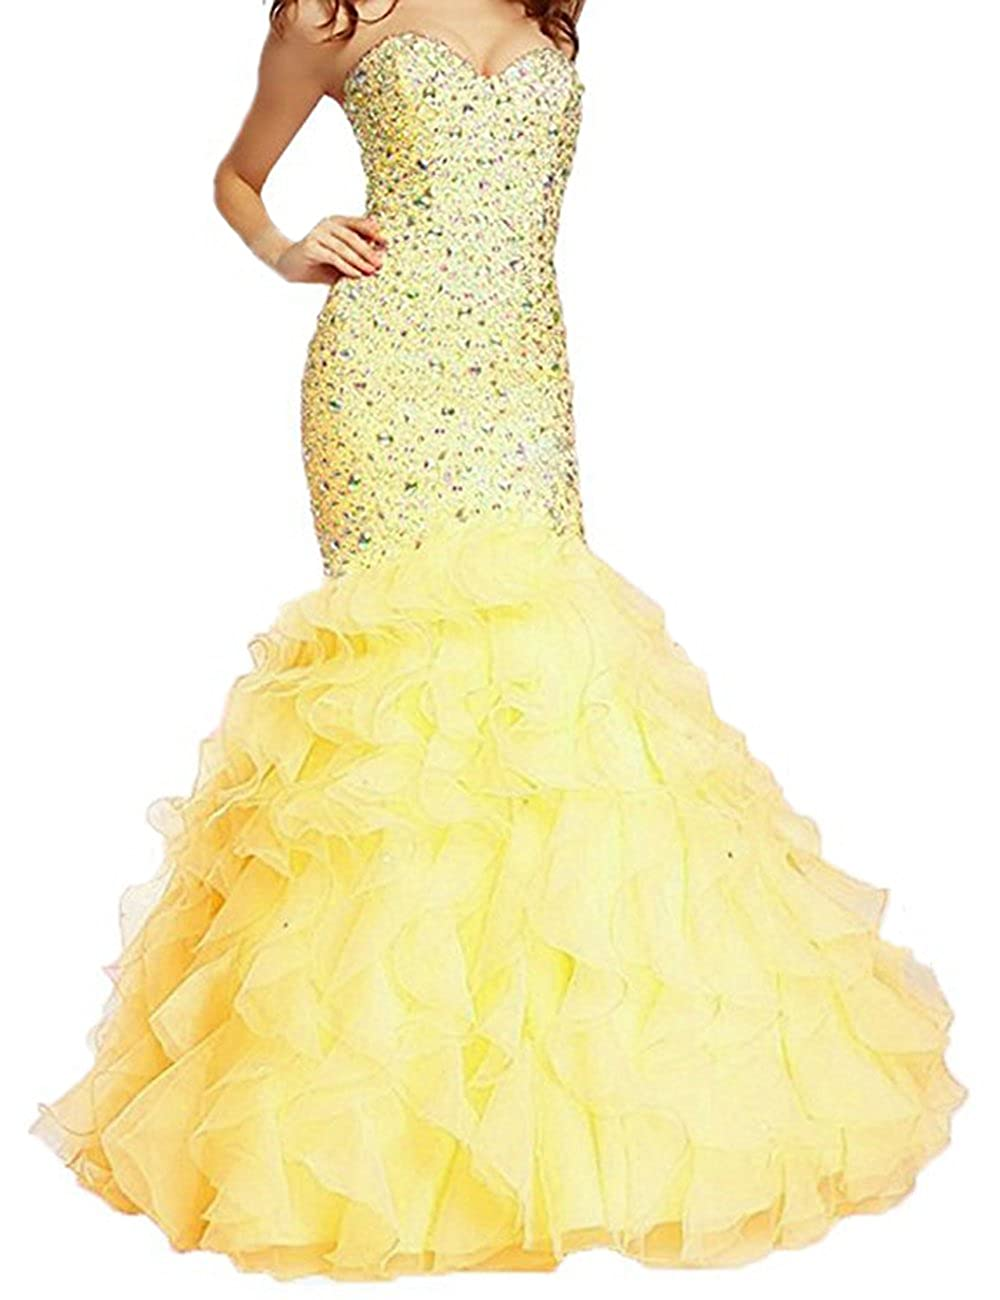 Yellow Beautydress Luxury Beaded Lace Up Sweetheart Mermaid Prom Dresses for Women BP116